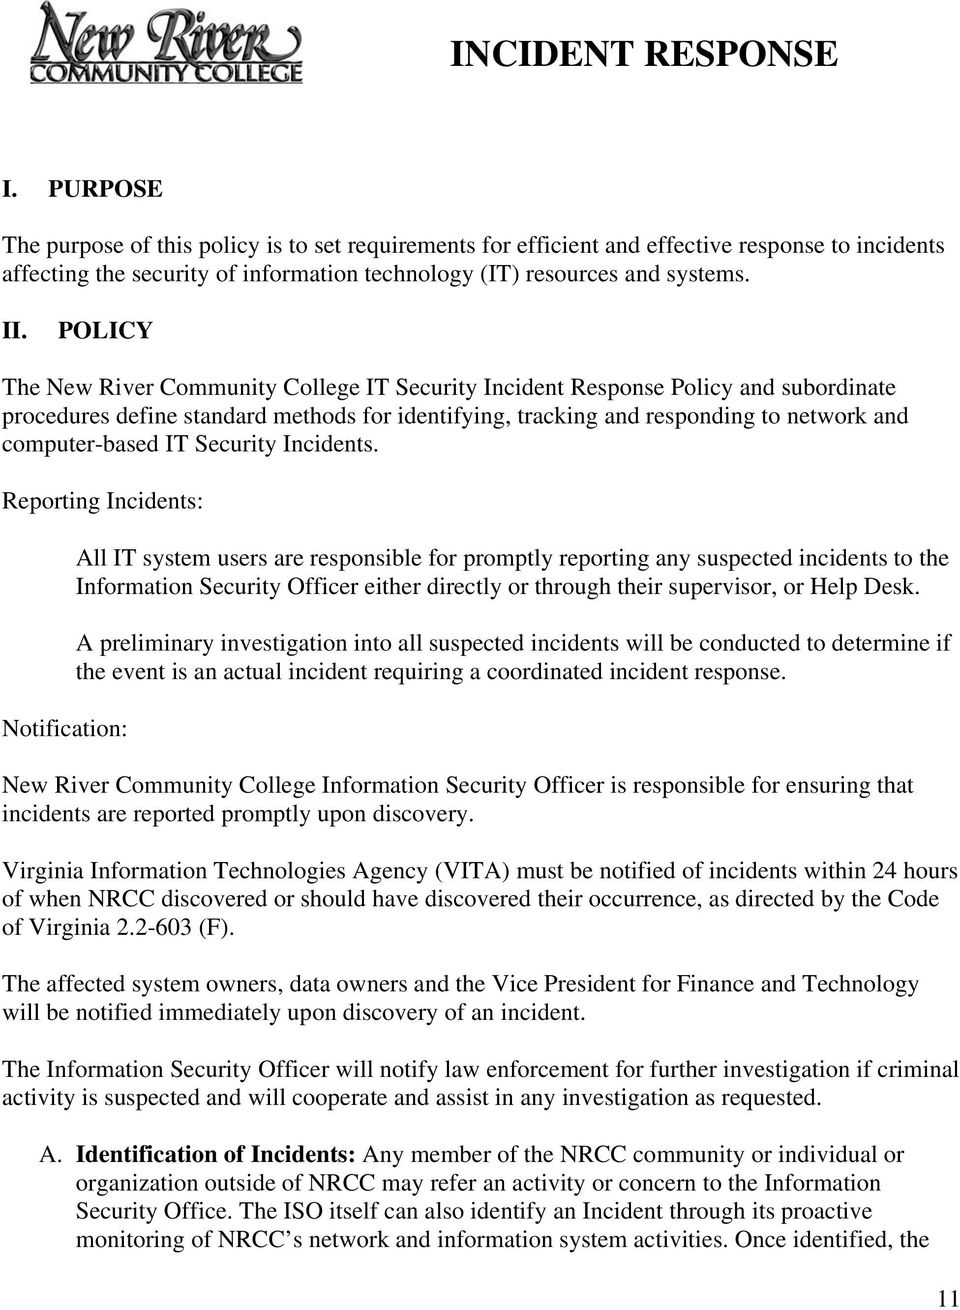 POLICY The New River Community College IT Security Incident Response Policy and subordinate procedures define standard methods for identifying, tracking and responding to network and computer-based